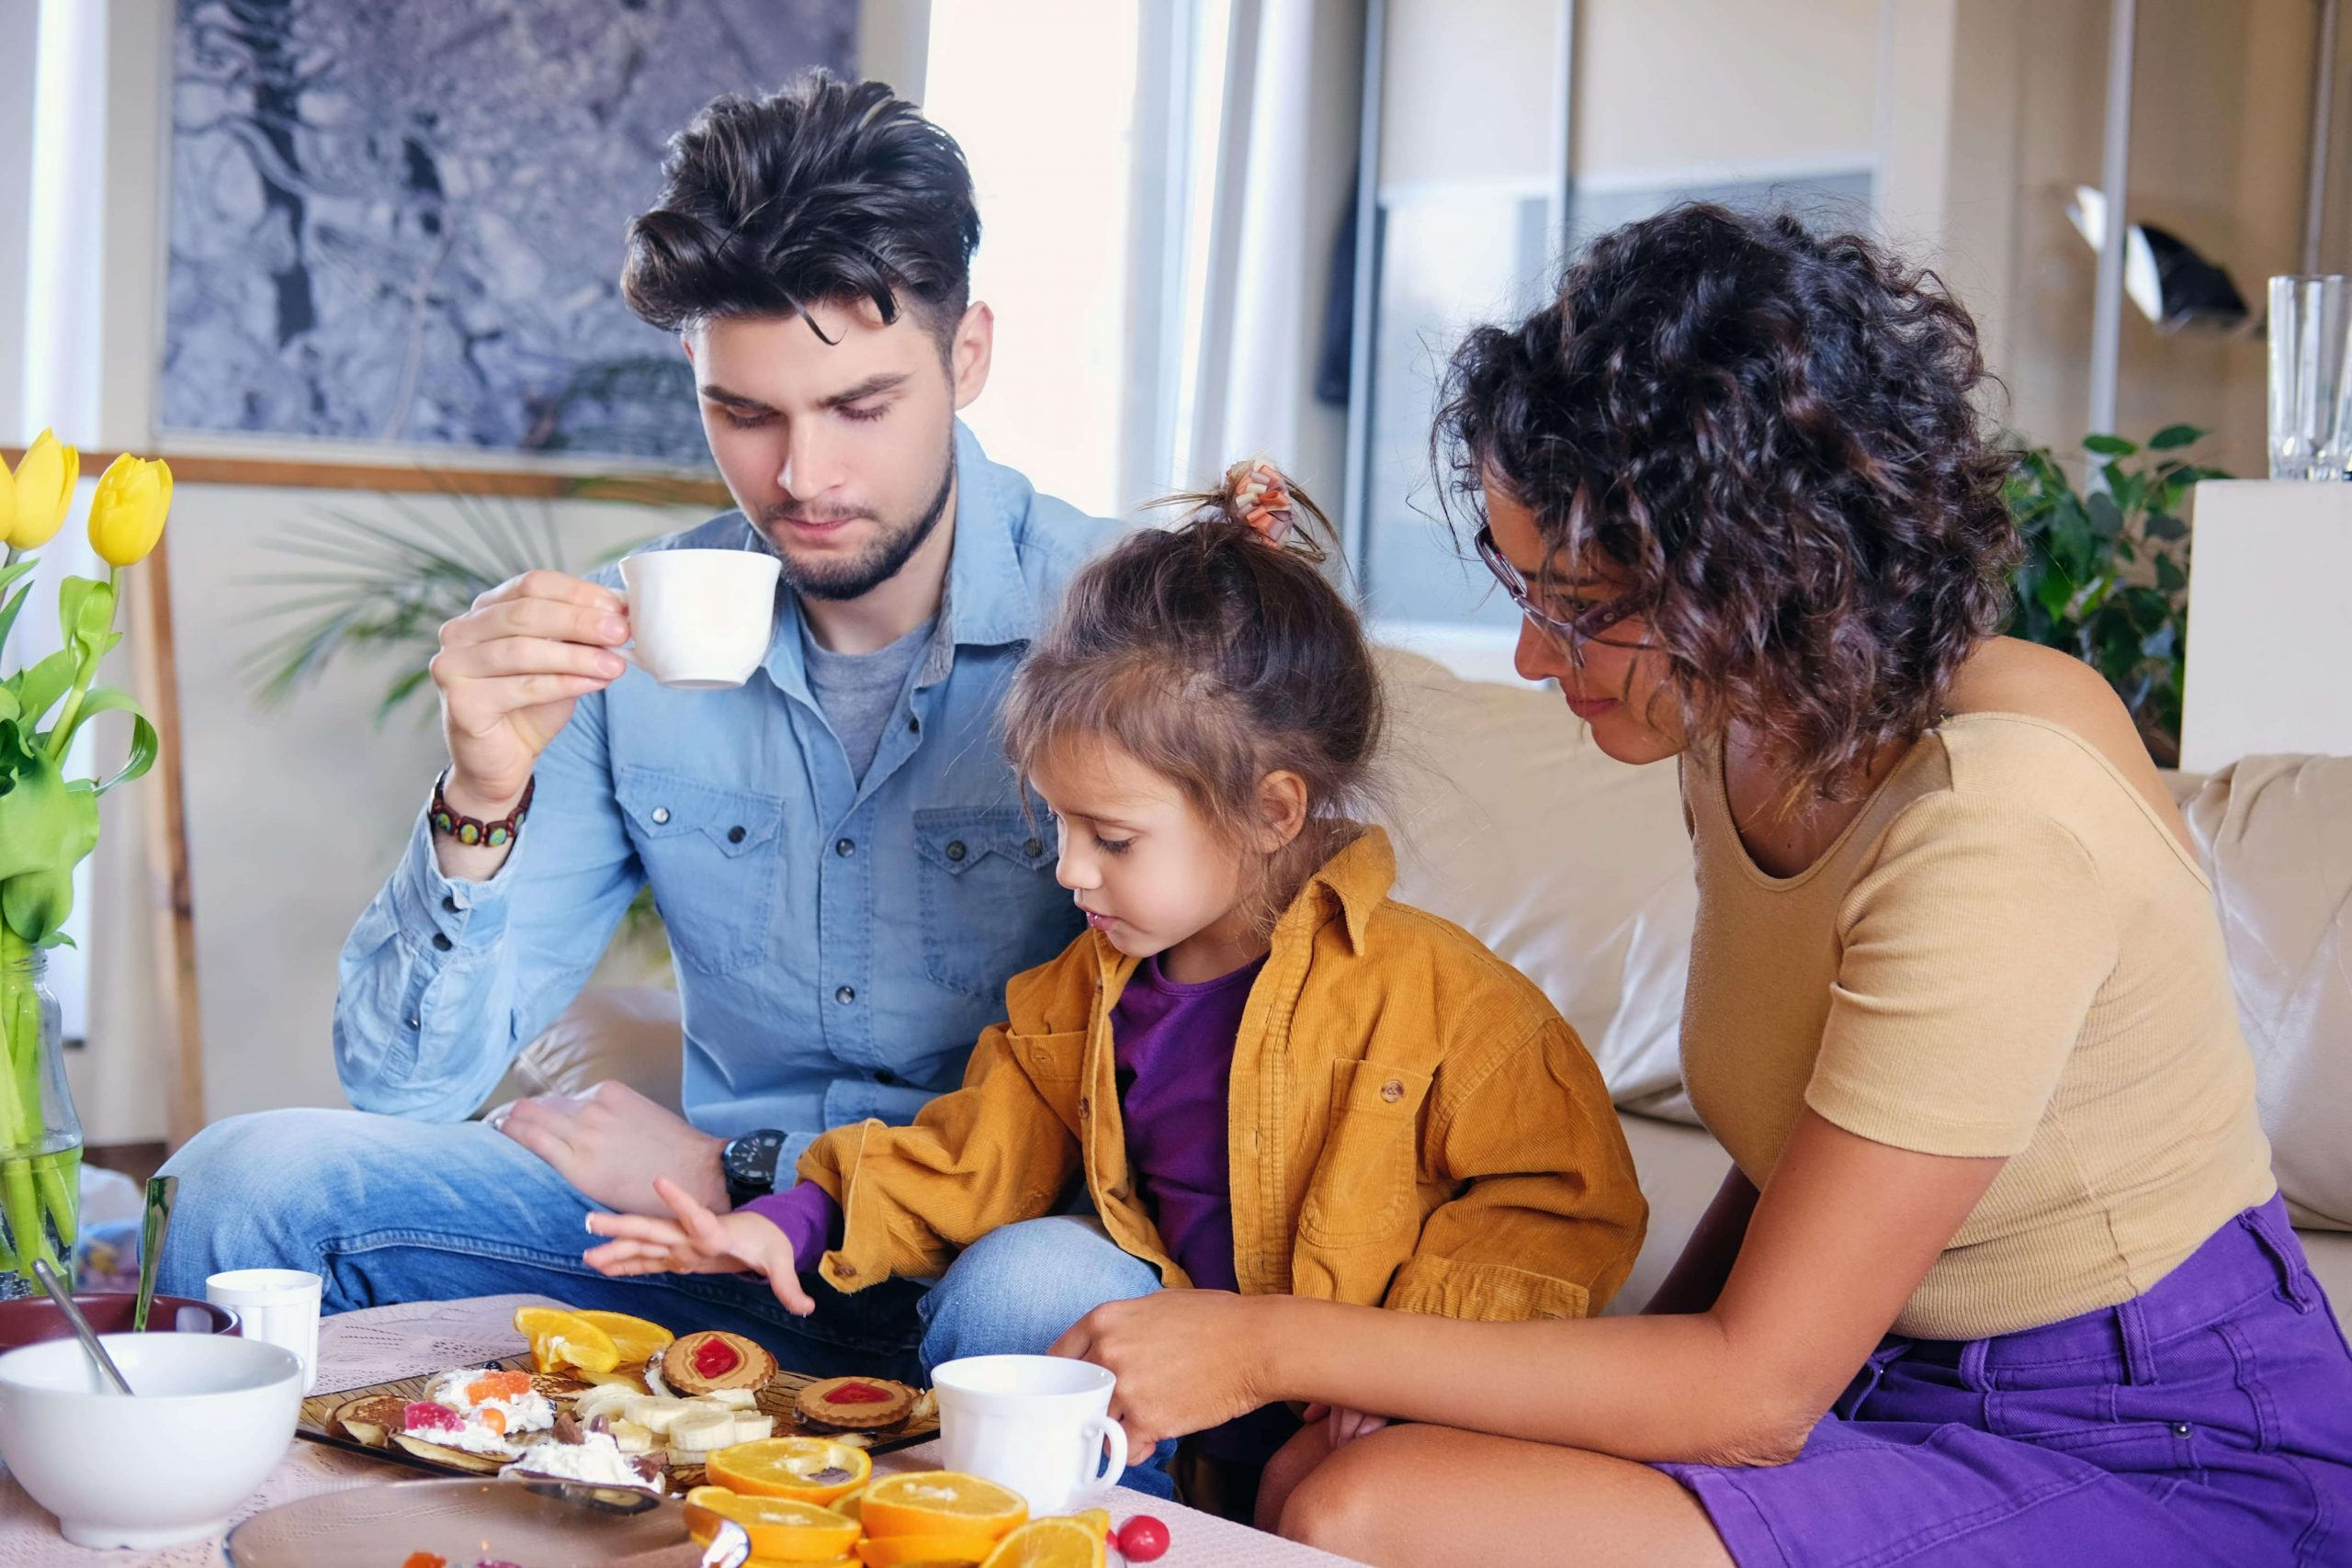 happy-family-at-the-table-in-a-living-room-FAGTQ2J-min